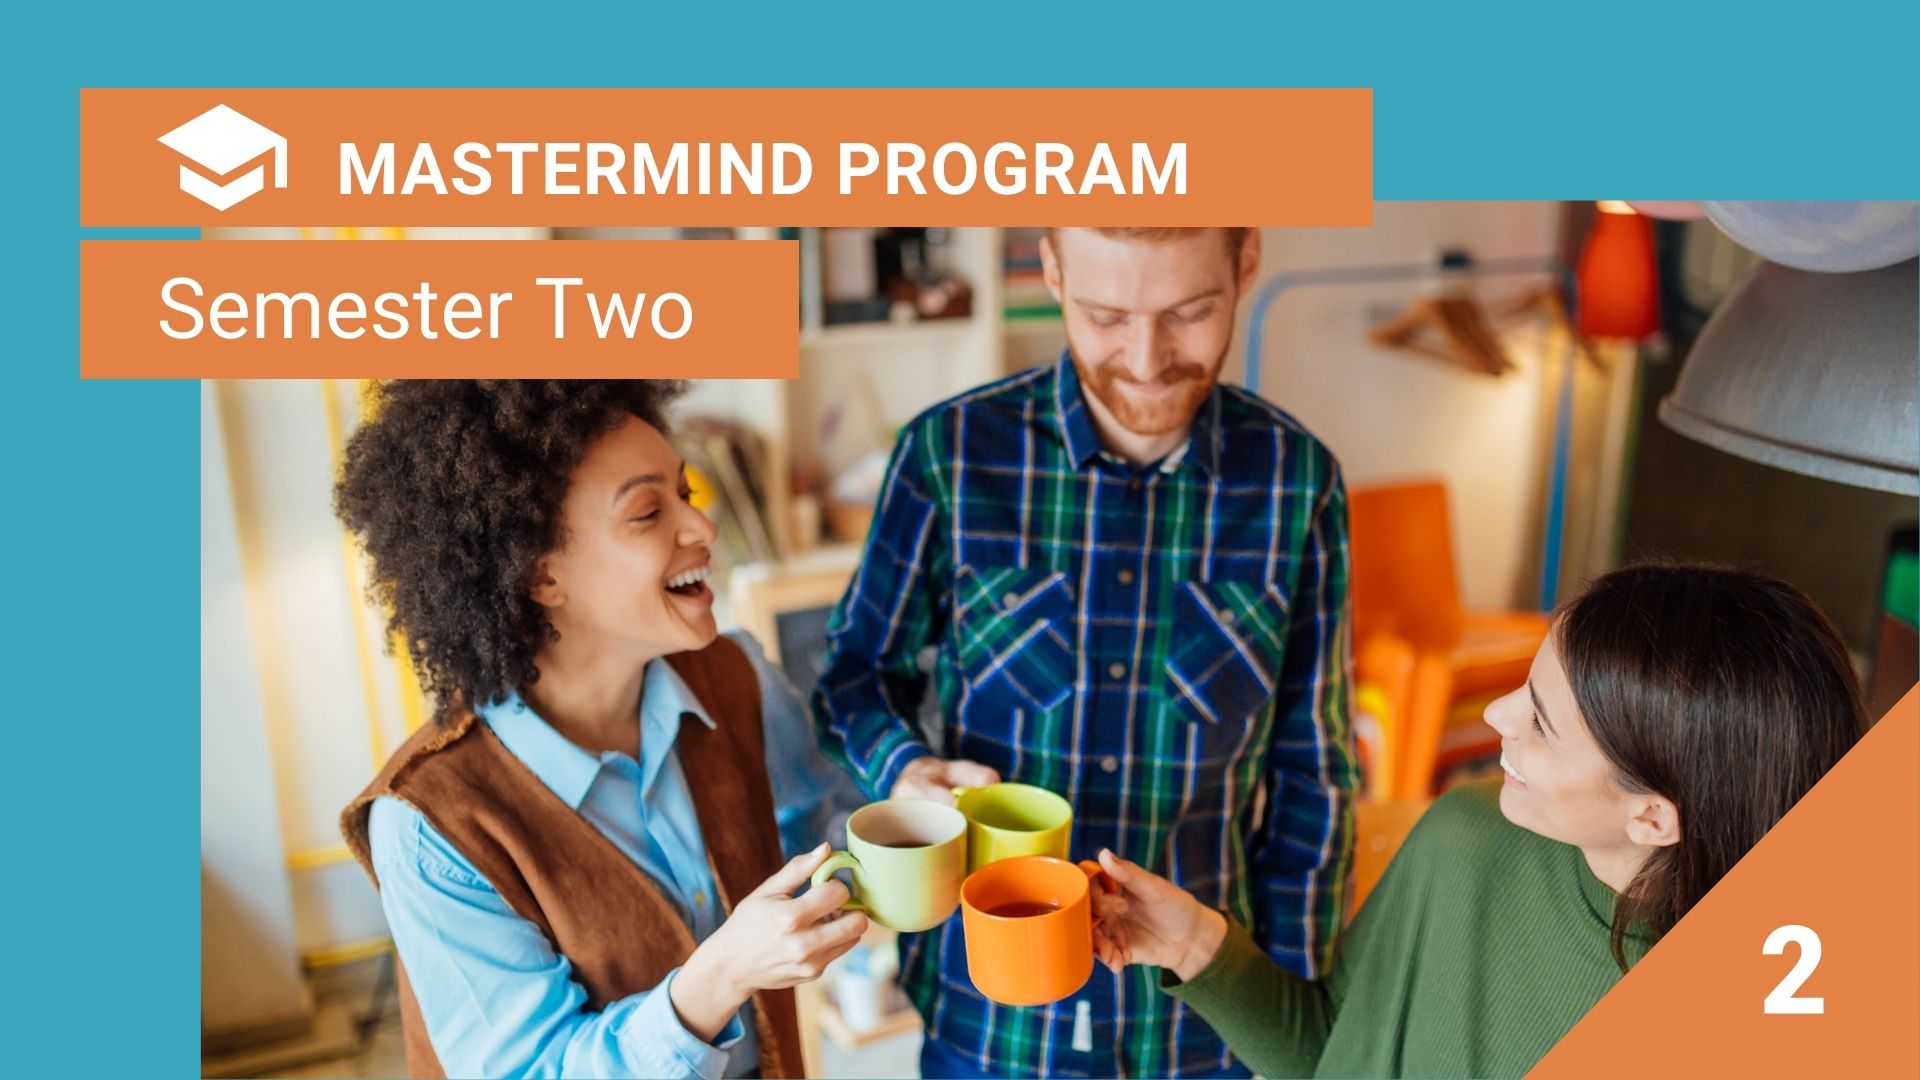 Mastermind Semester Two